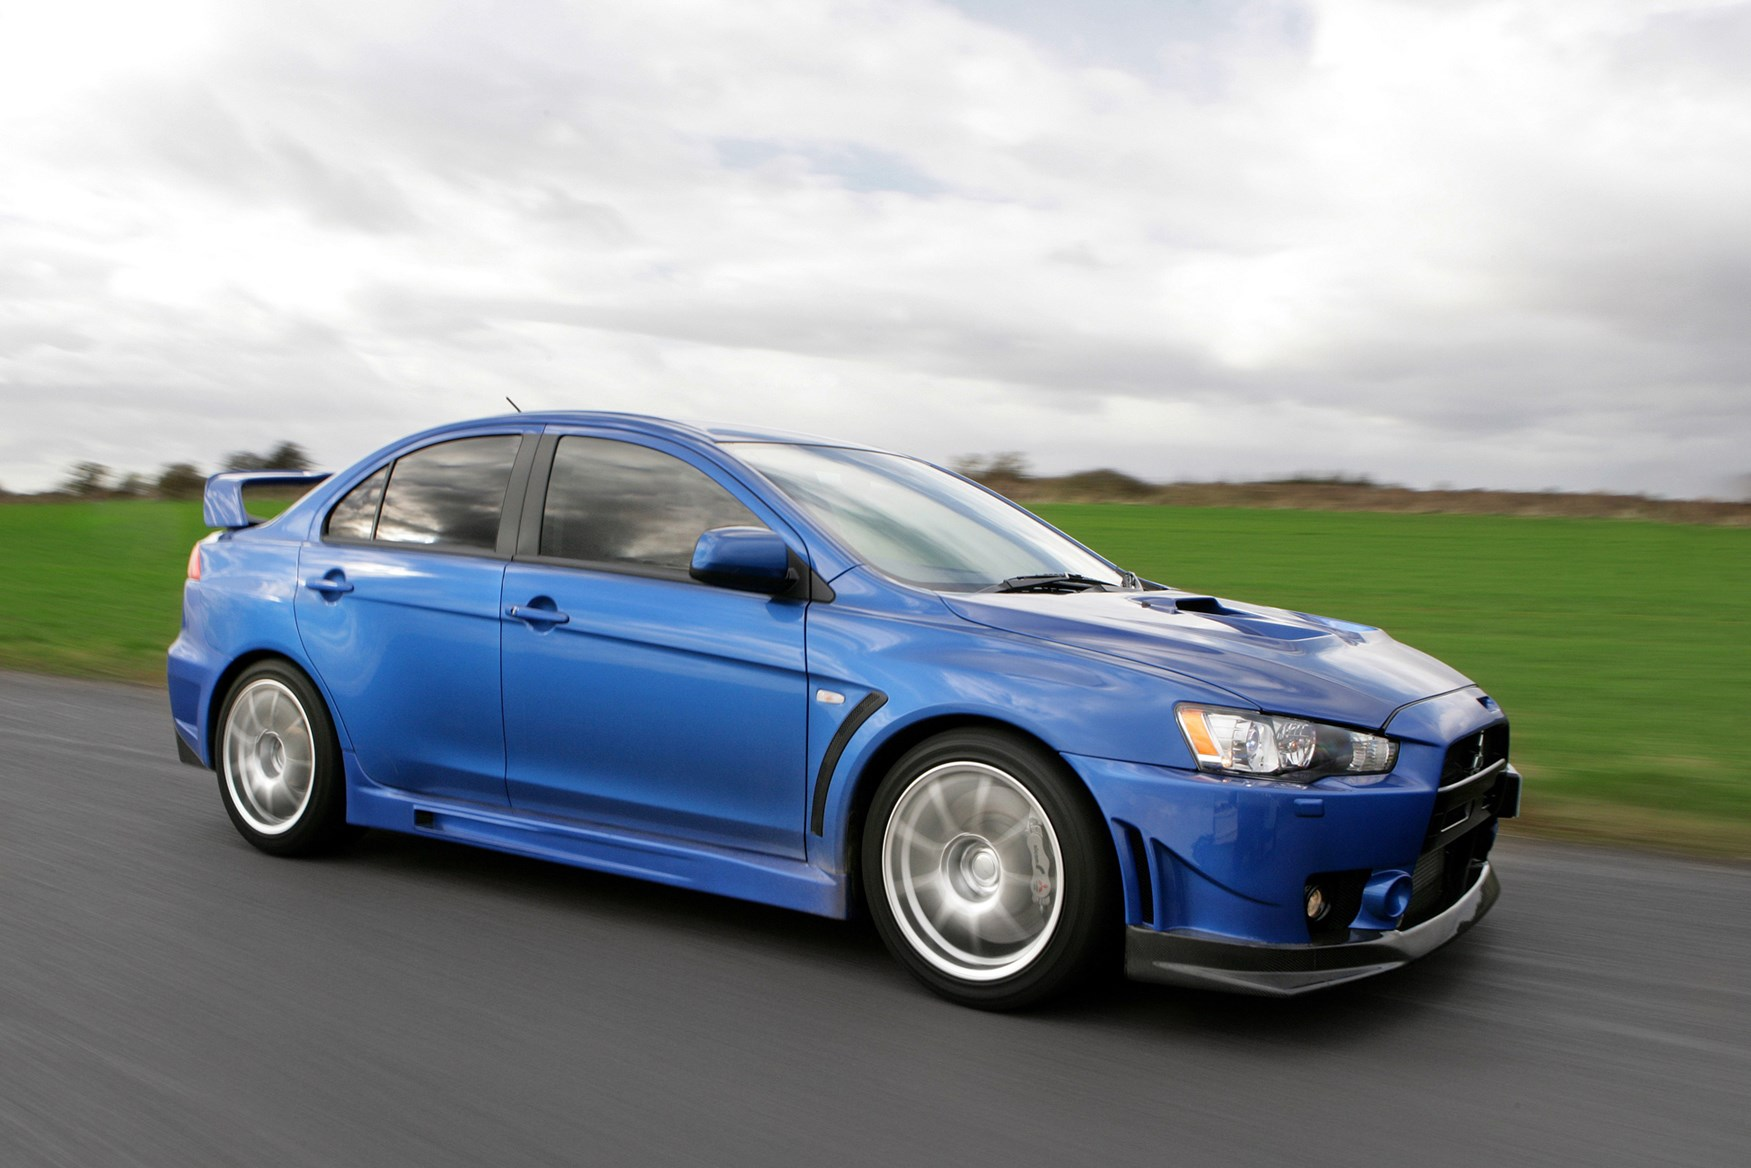 Used Mitsubishi Lancer Evo Evo X (2008 - 2014) Review | Parkers